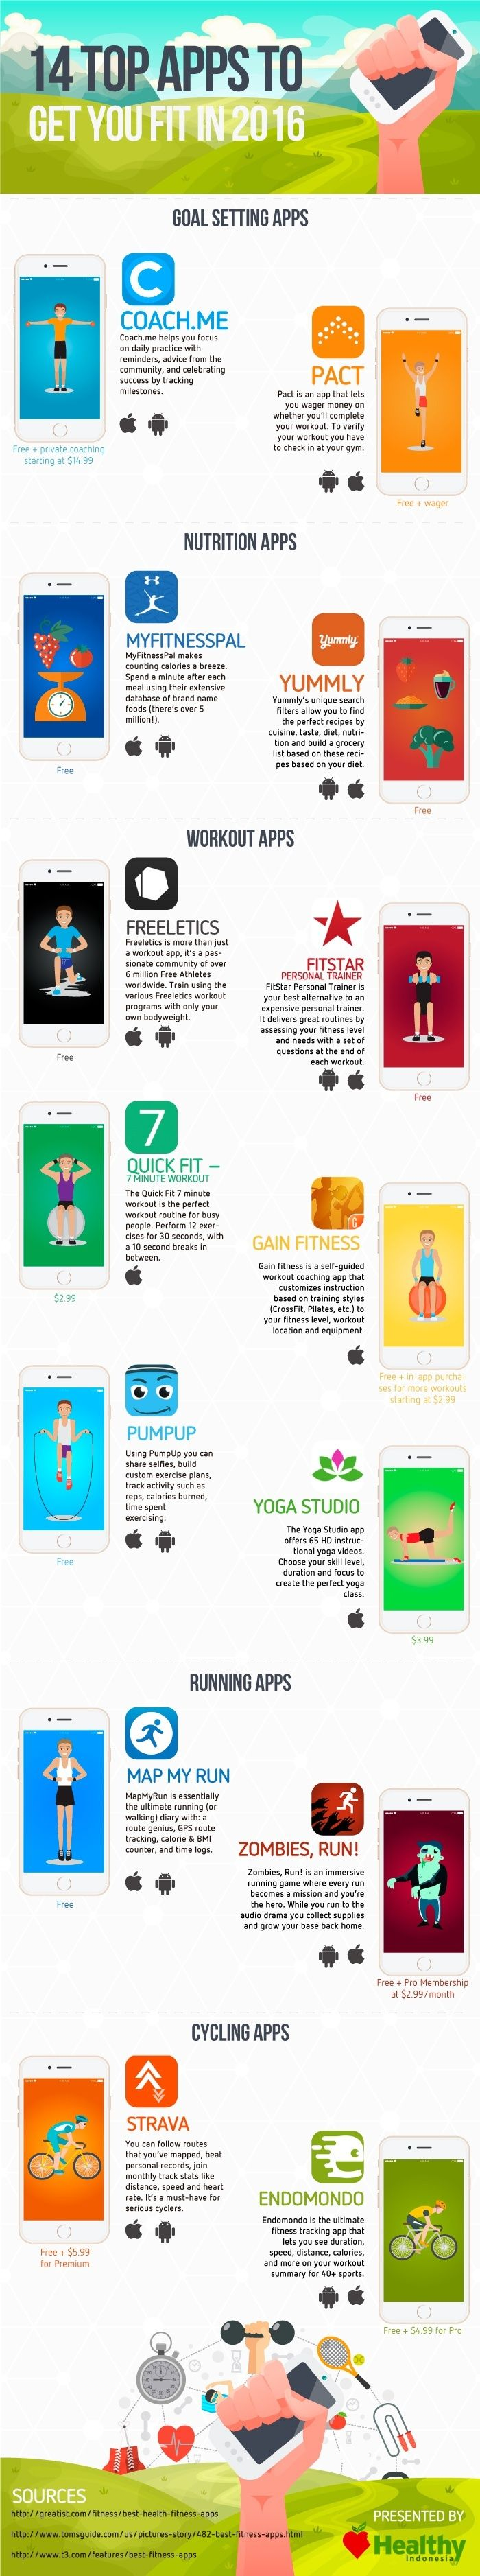 Tips to Get in Shape with Android and Apple Fitness Apps